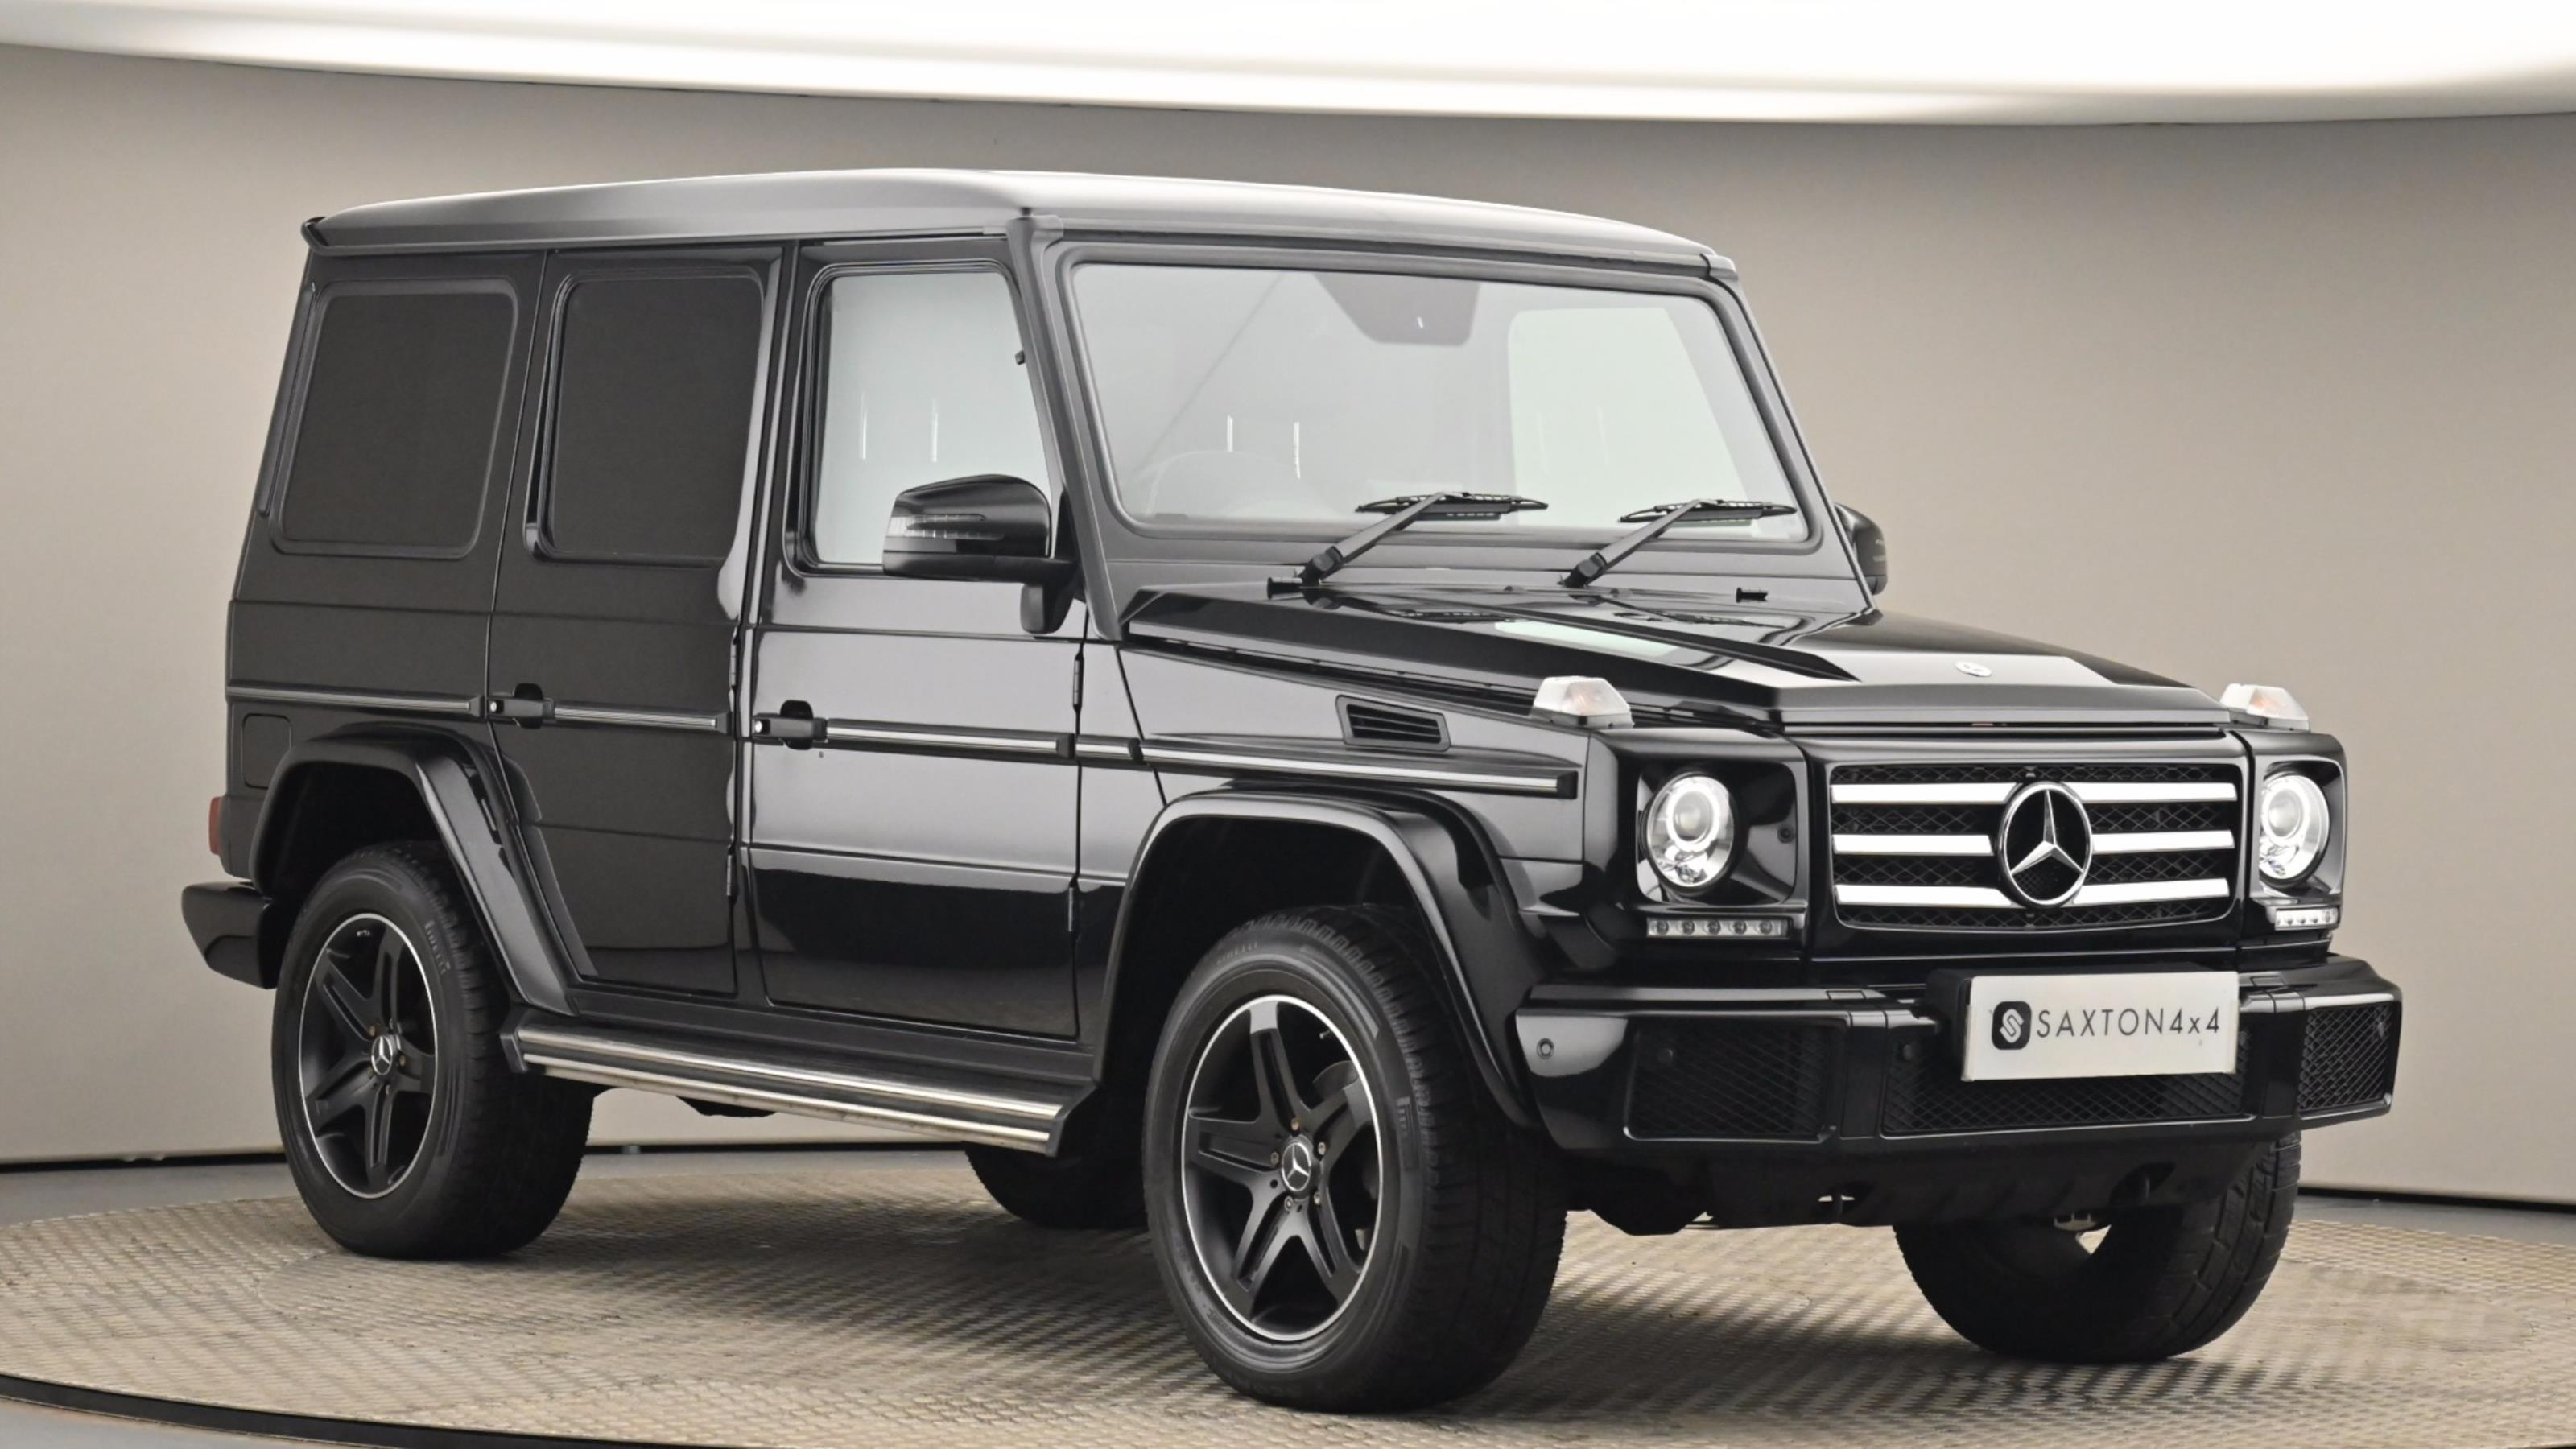 Used 2018 Mercedes-Benz G CLASS G350d Night Edition 5dr Tip Auto BLACK at Saxton4x4